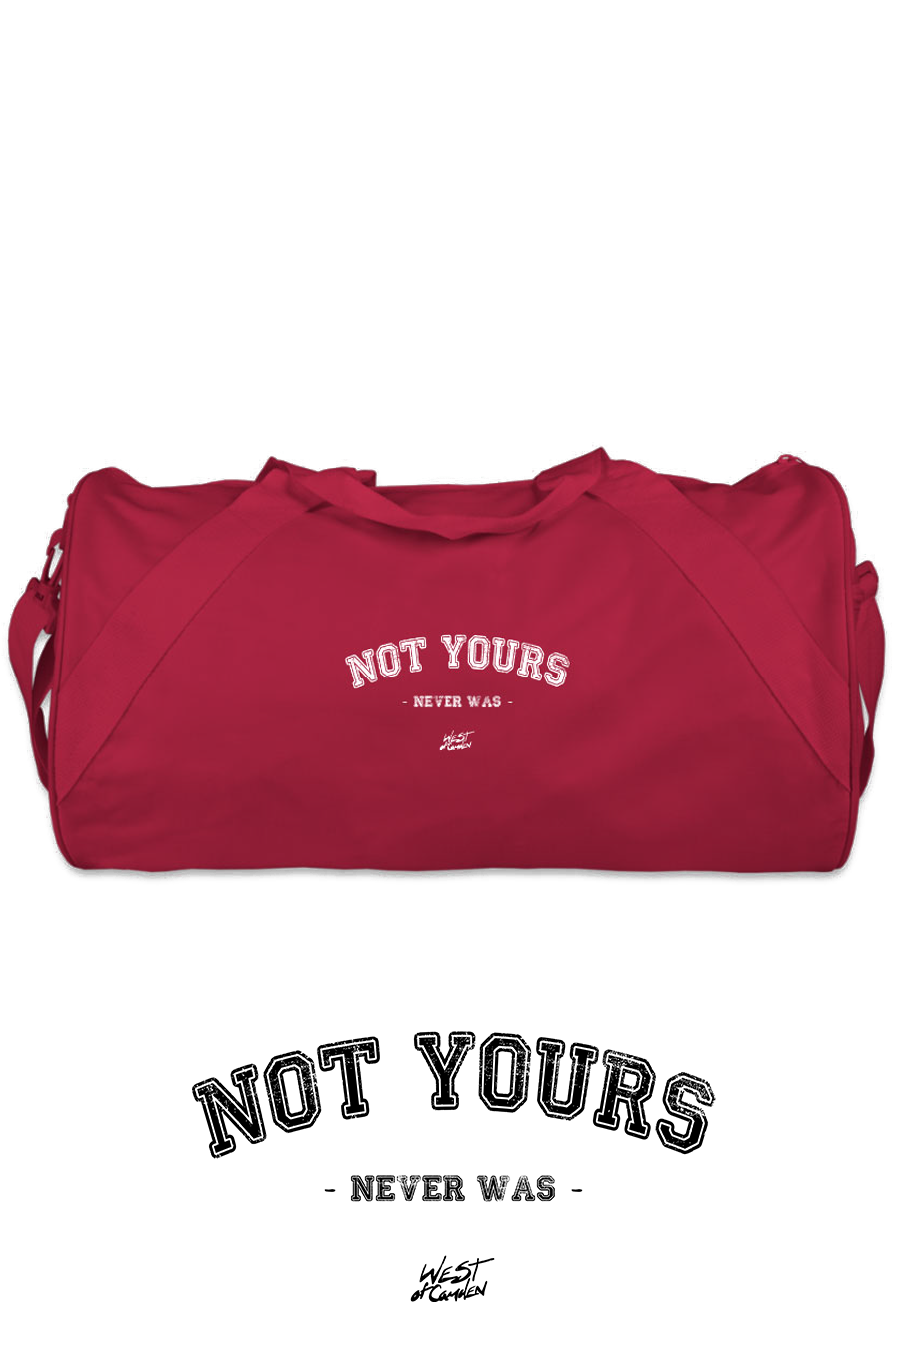 Not Yours Duffel Bag | Red - West of Camden